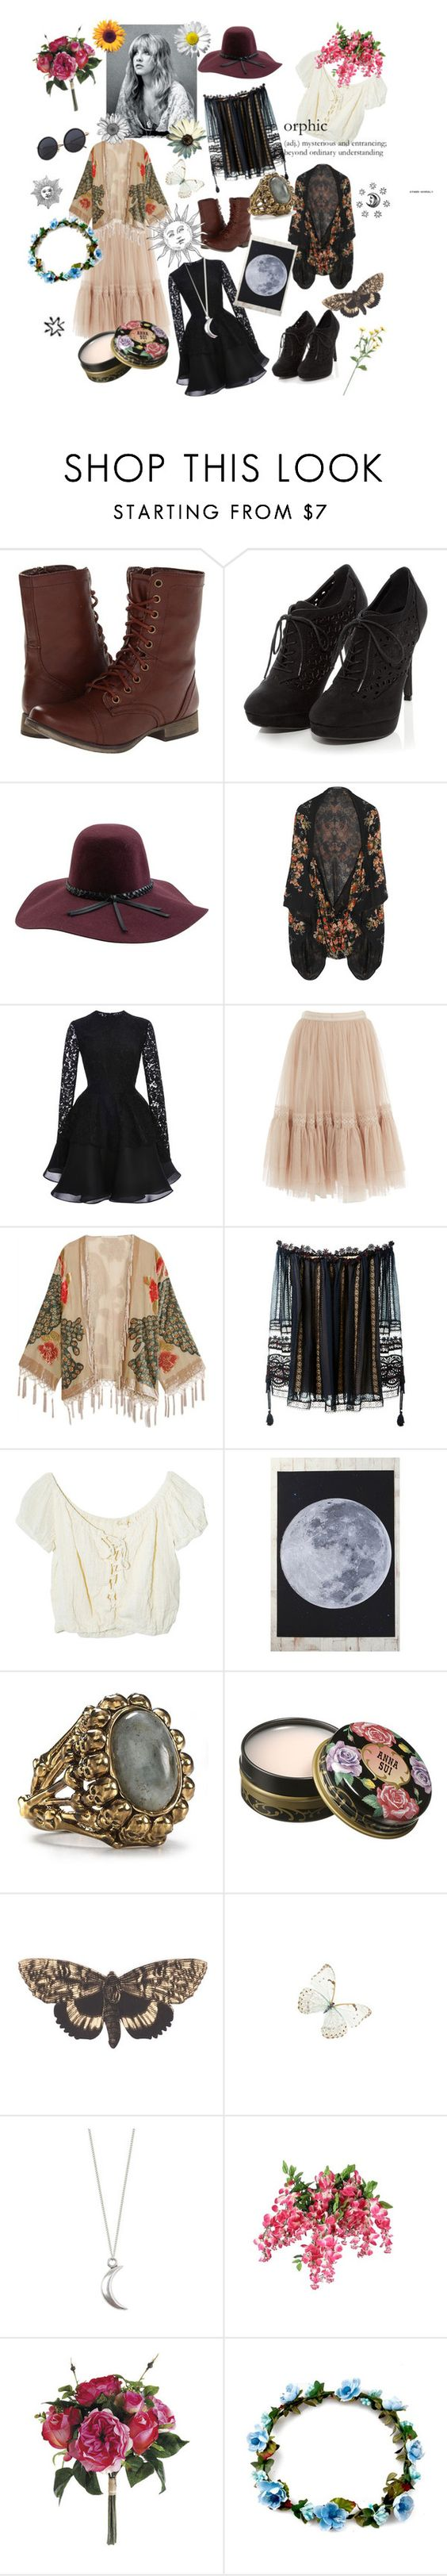 """""""stevie"""" by xcherrybombxx ❤ liked on Polyvore featuring Skechers, Brixton, Alexander McQueen, Cushnie Et Ochs, Needle & Thread, Kite and Butterfly, Chloé, Jens Pirate Booty, Urban Outfitters and House of Harlow 1960"""